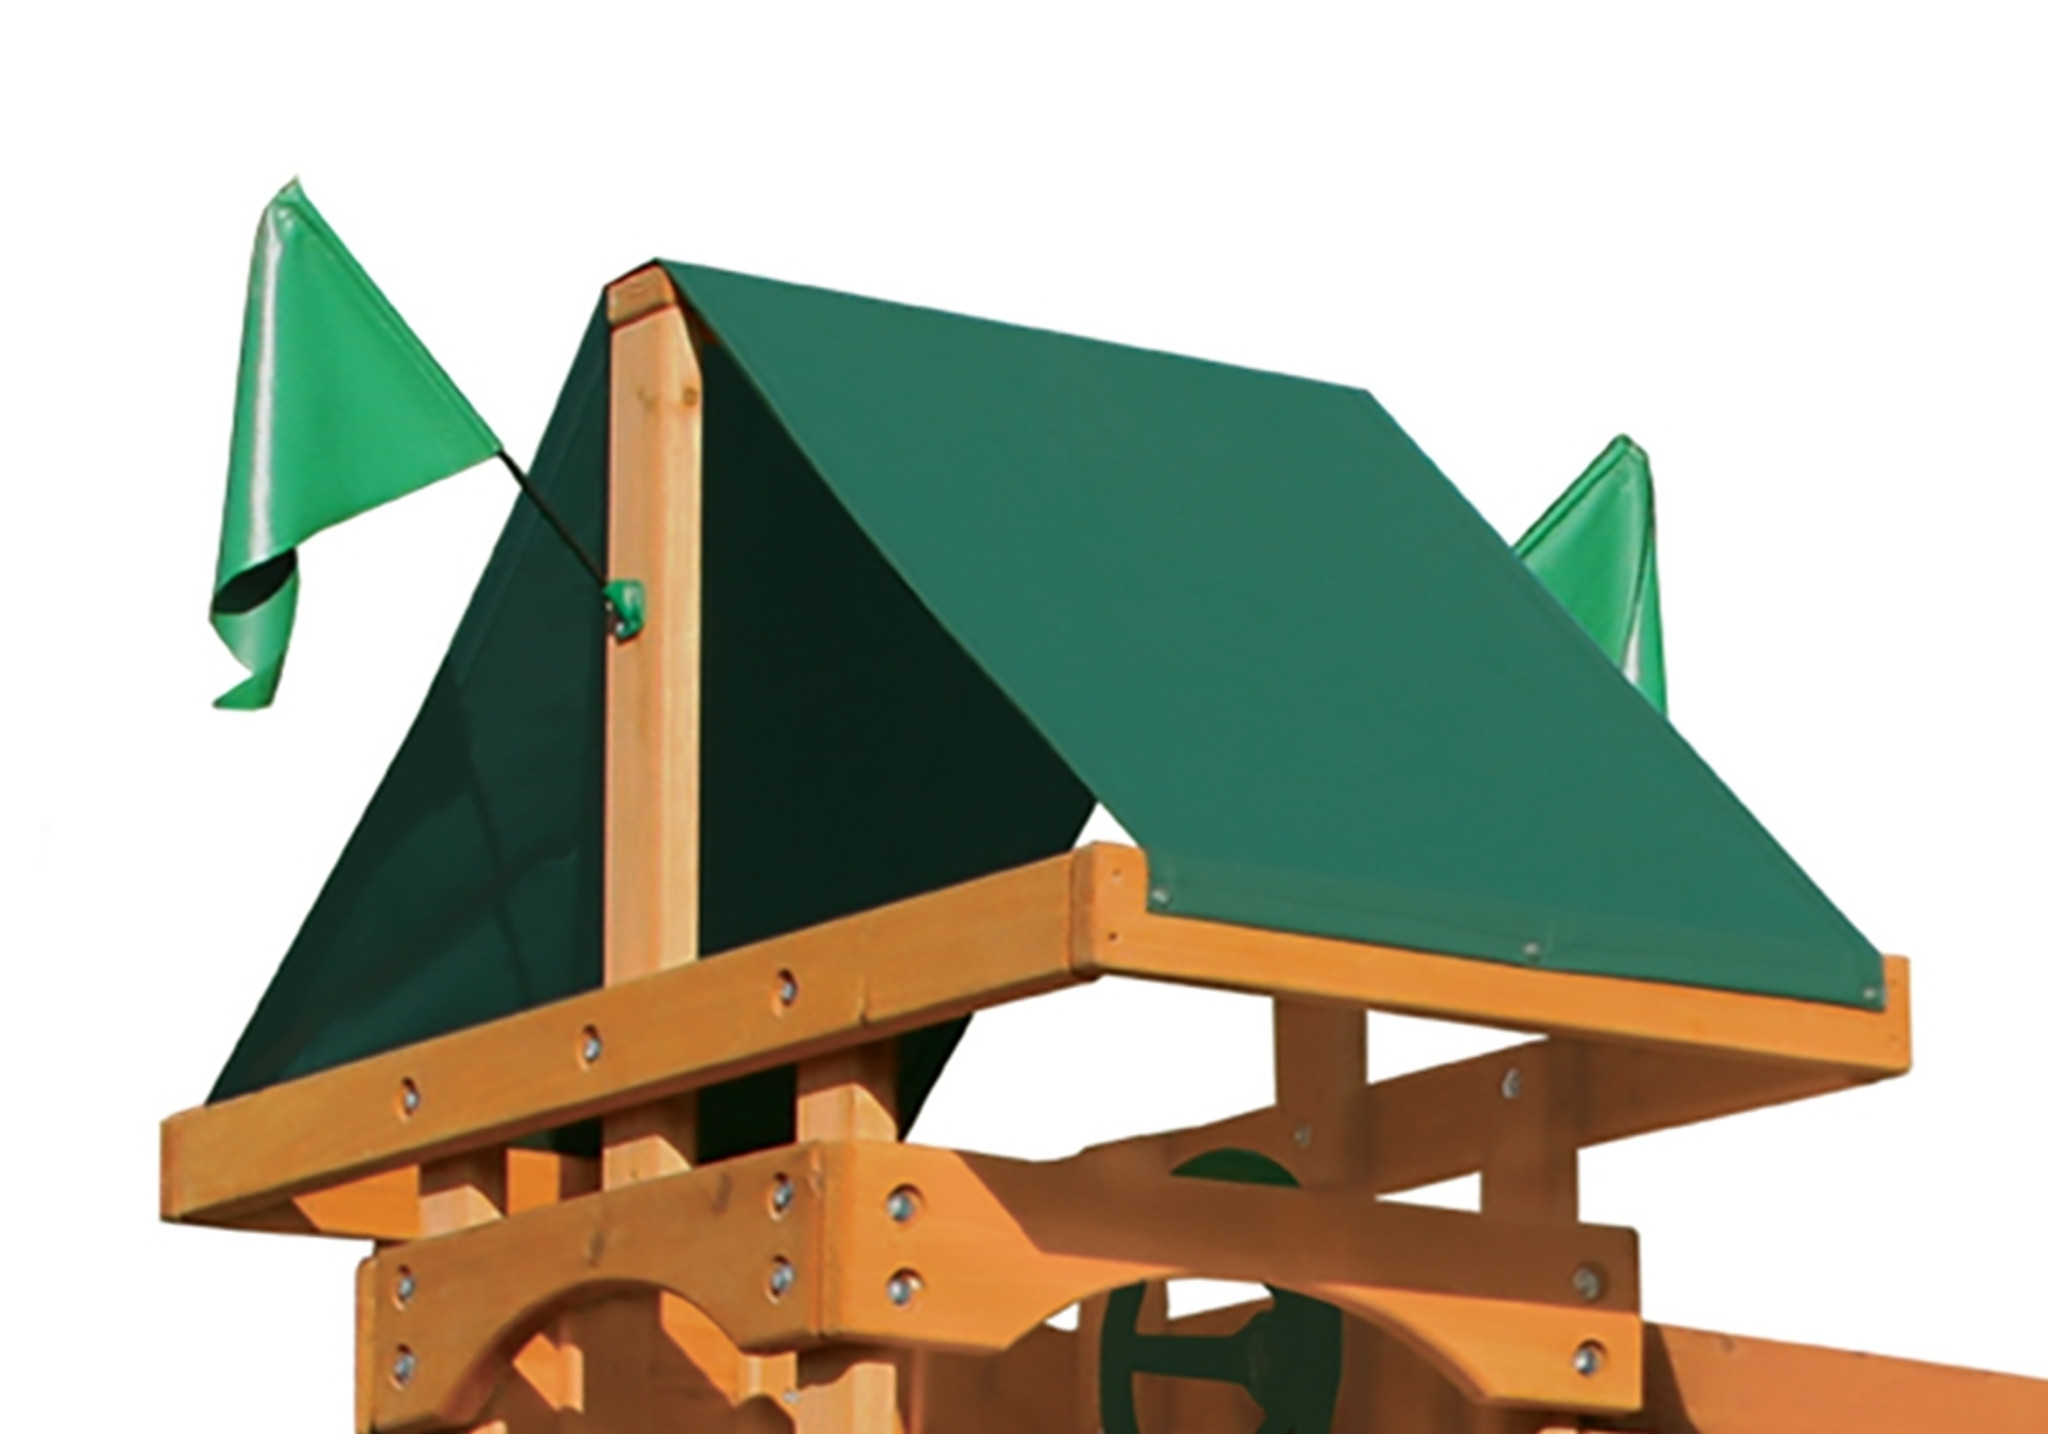 Lowe S Tarps And Covers : Vinyl canopy for safari and accessories by gorilla playsets